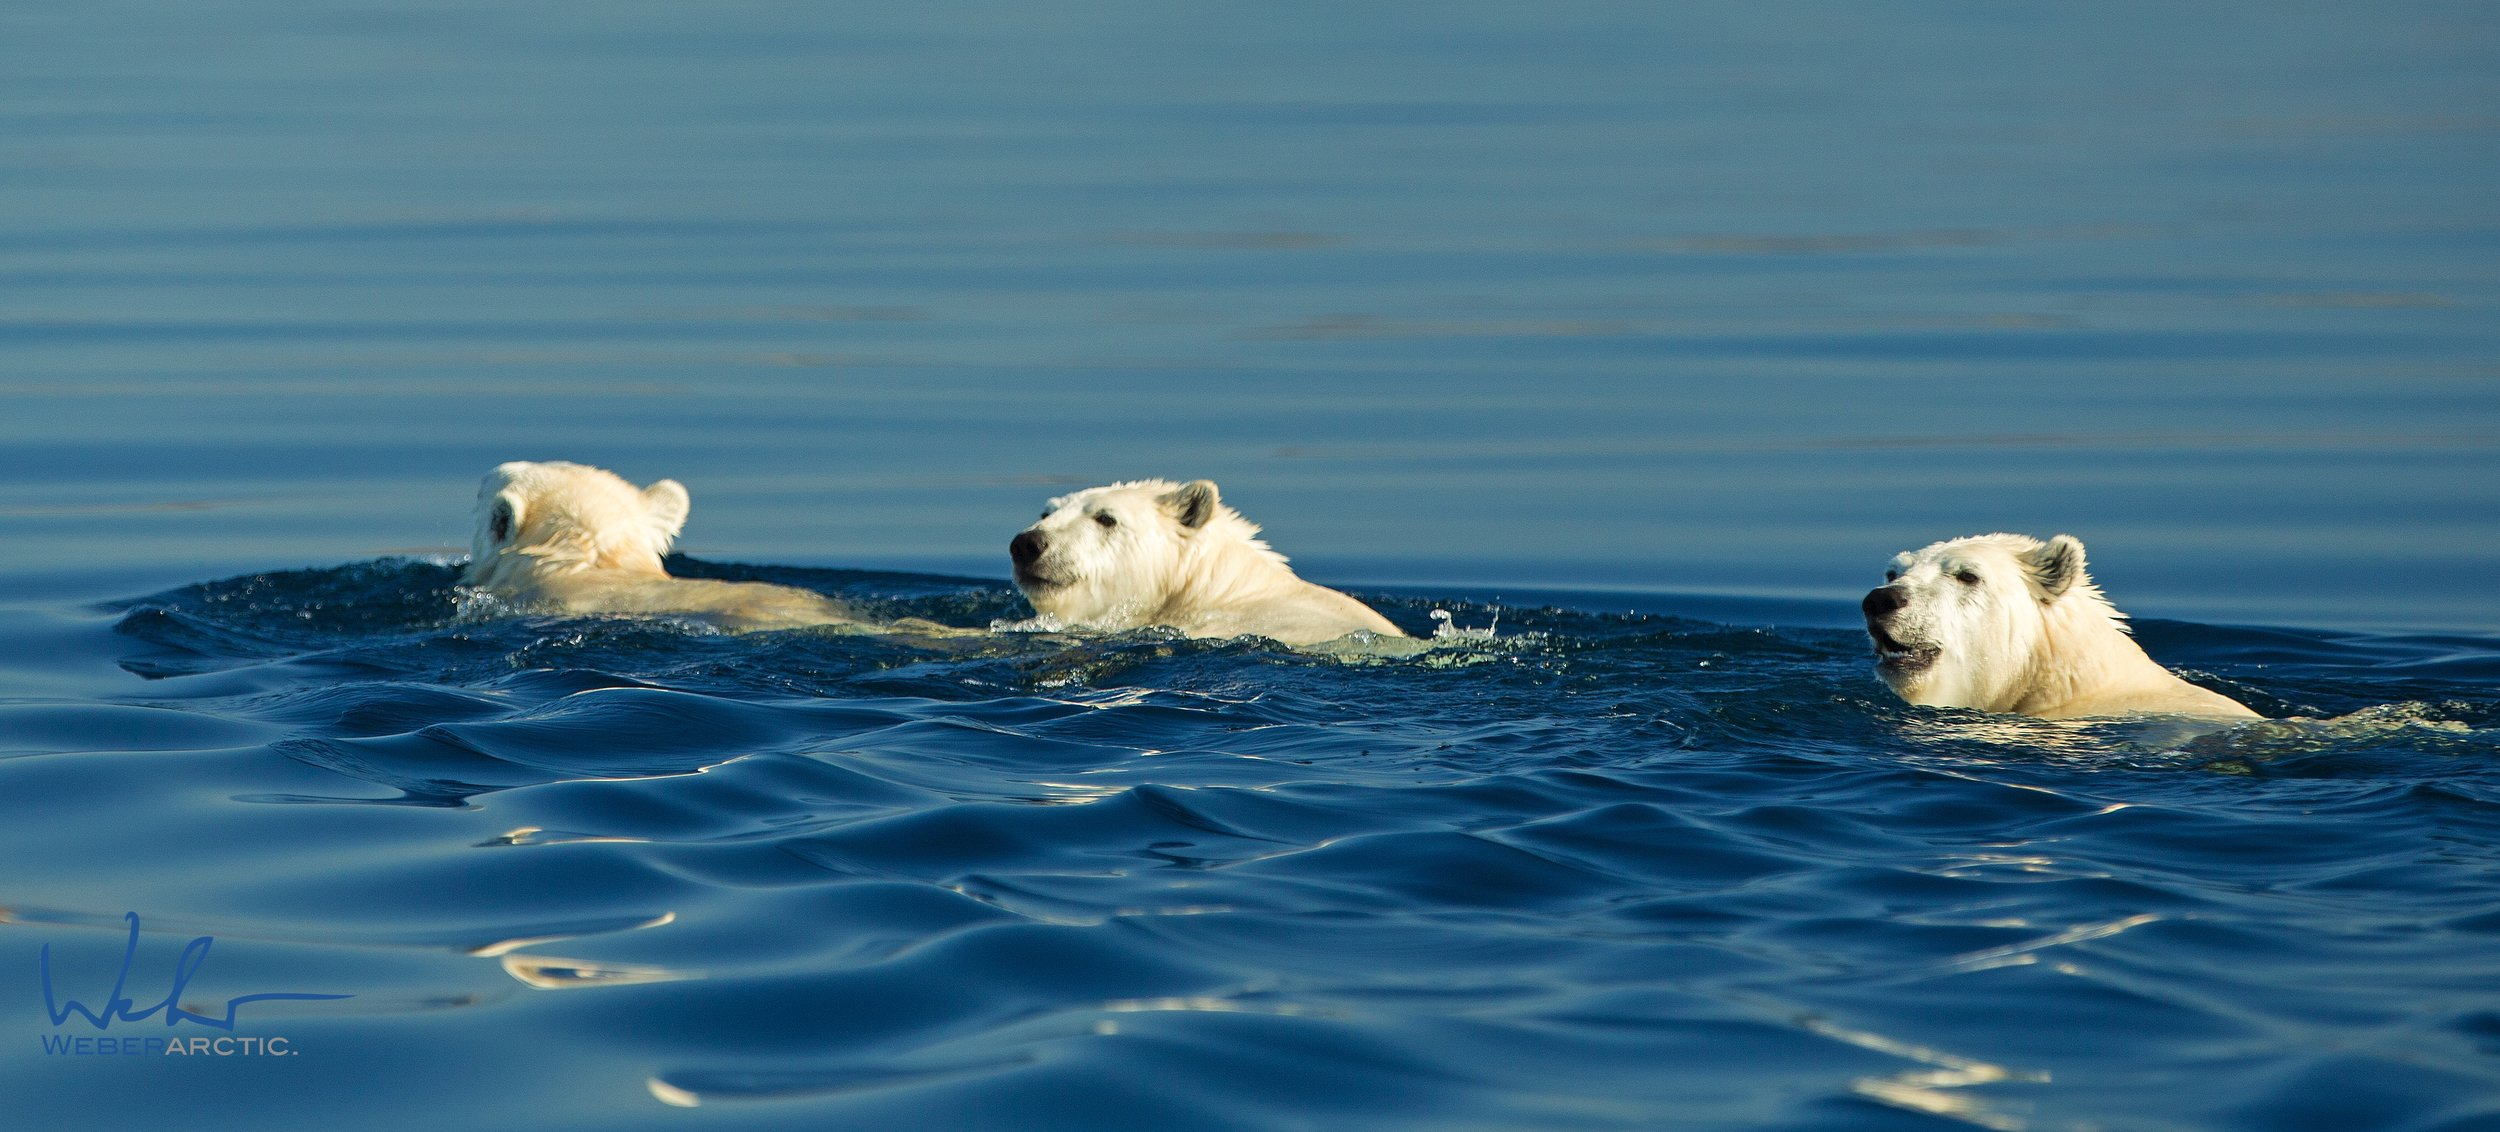 Mother and cubs swimming.jpg